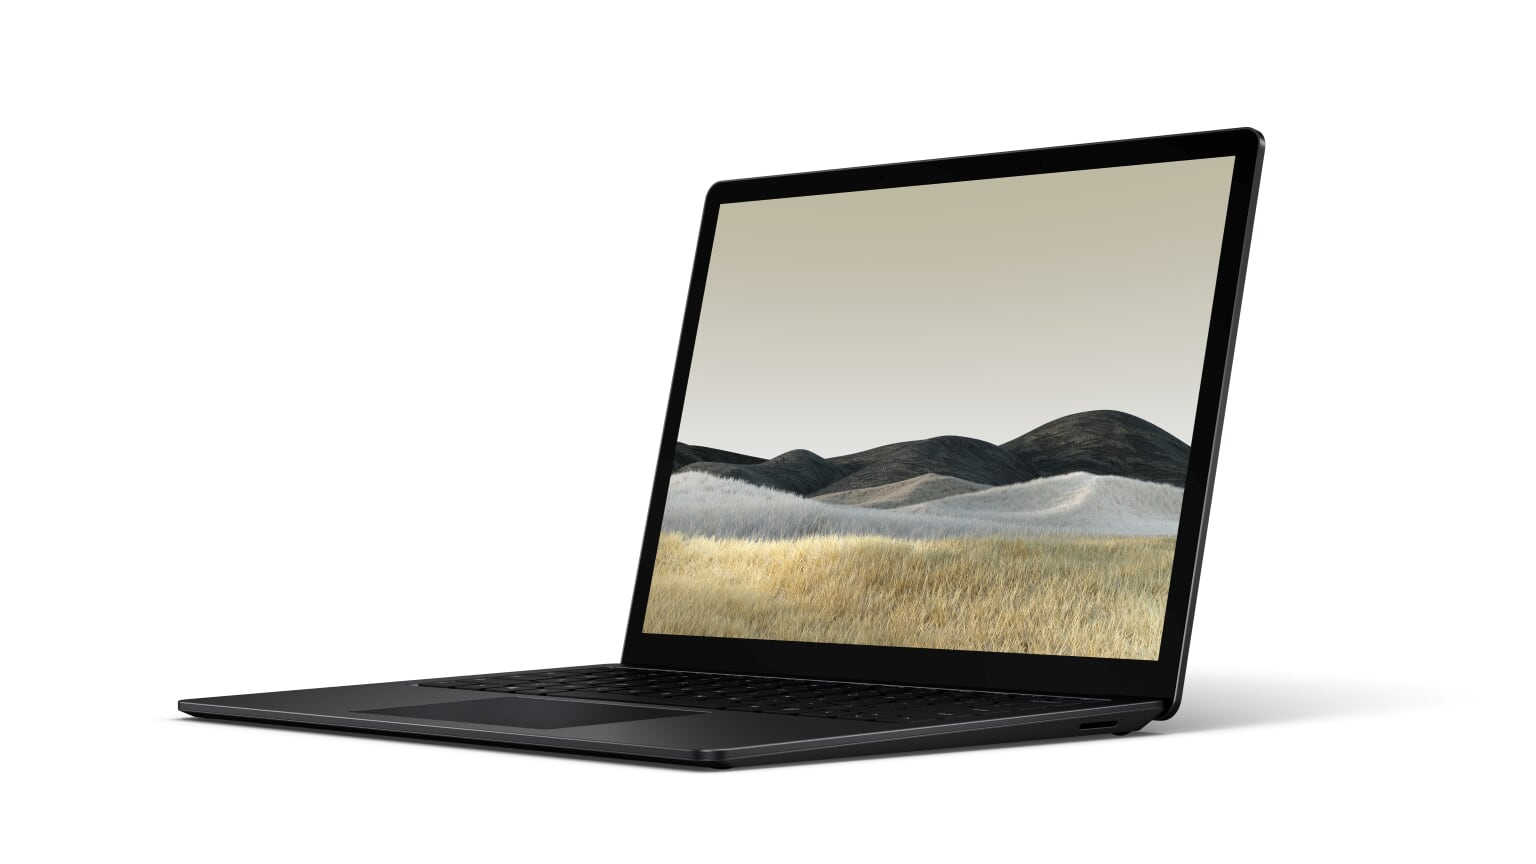 Microsoft Surface Laptop 3 - 13.5in / i5-1035G7 / 8GB / 256GB, Black; Commercial